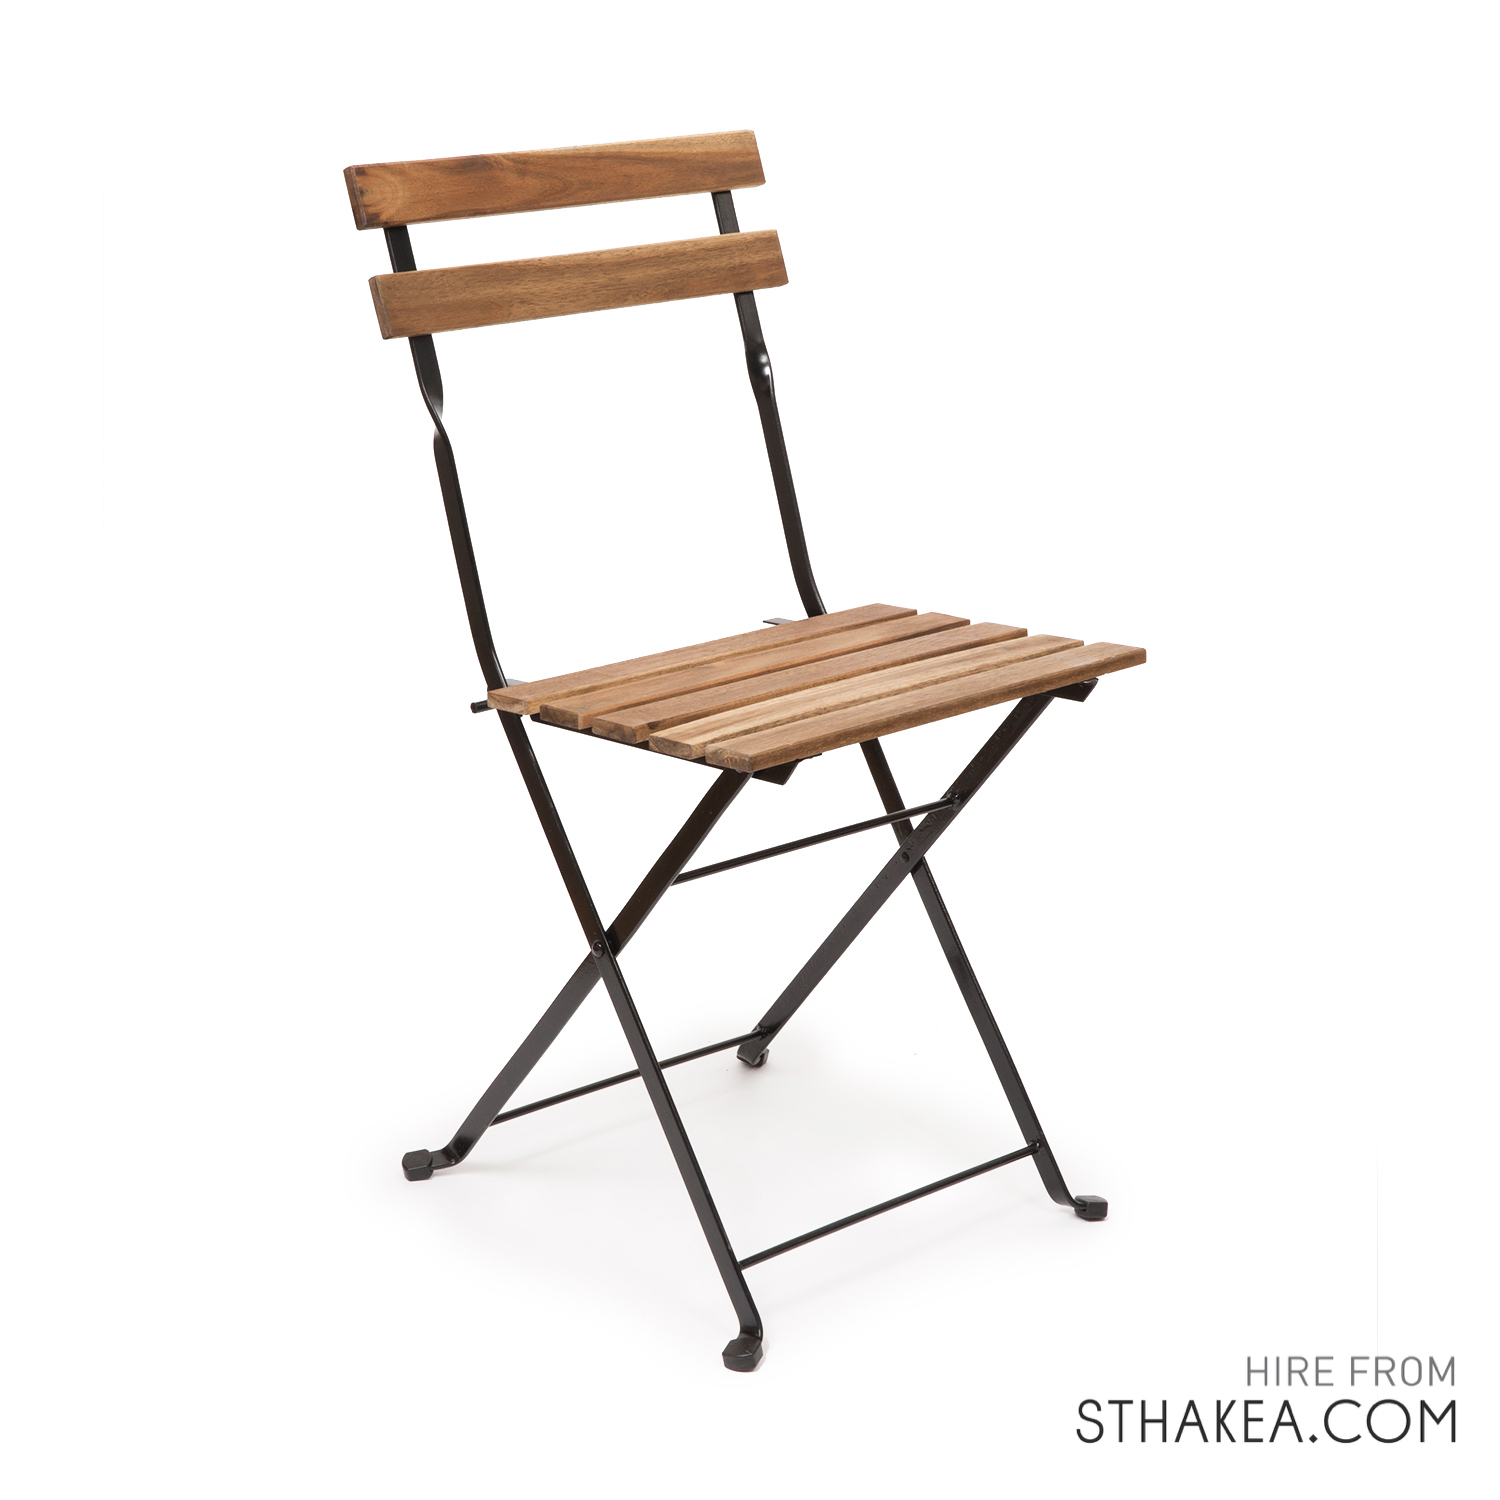 St Hakea Melbourne Event Hire Timber Folding Chair.jpg